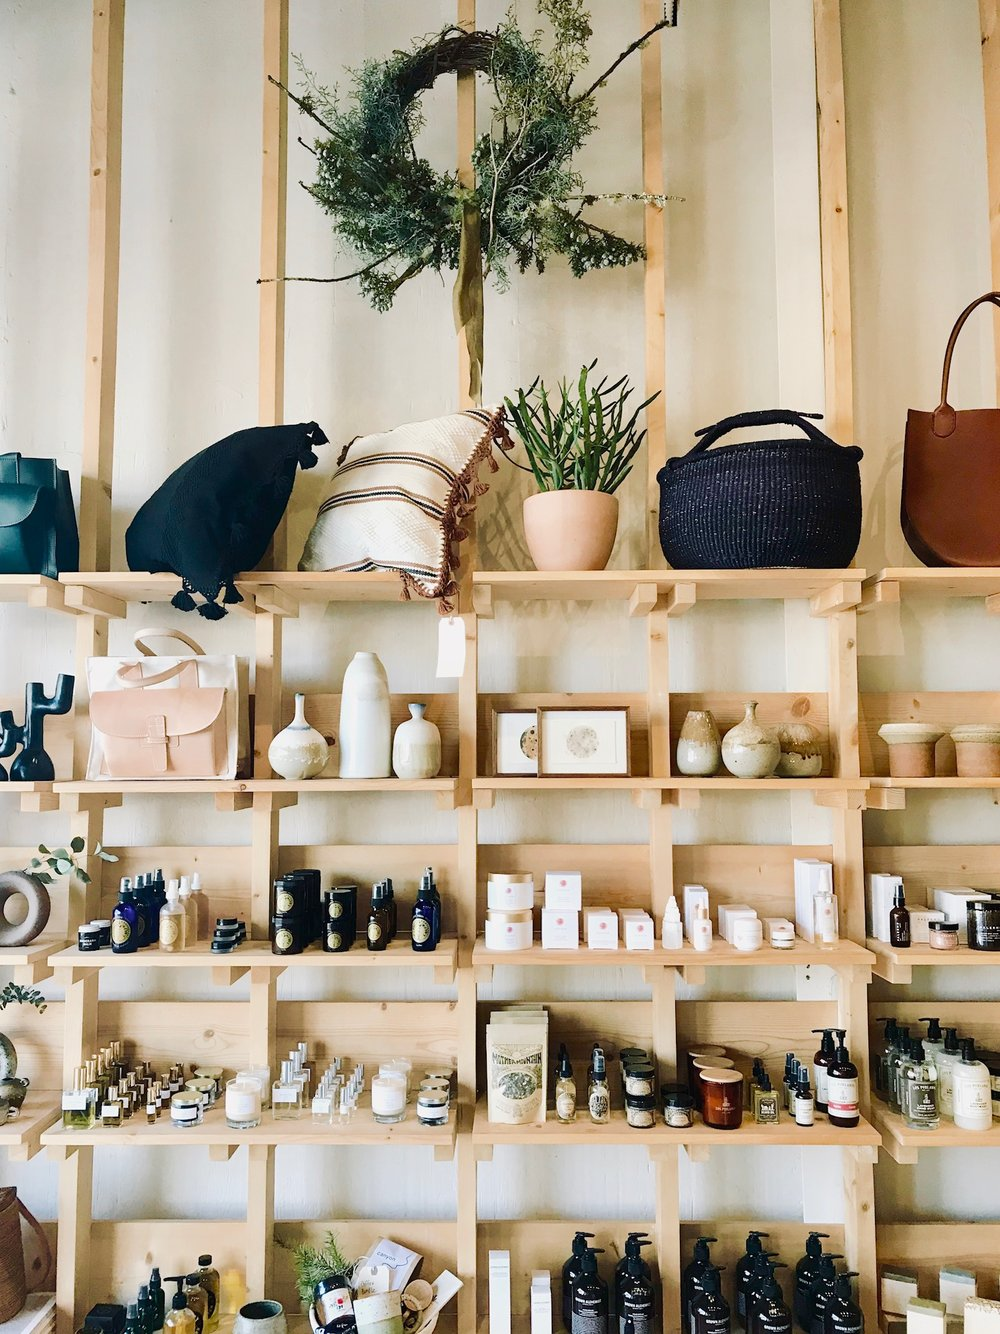 Favorite place to gift shop:  Midland  in Los Angeles